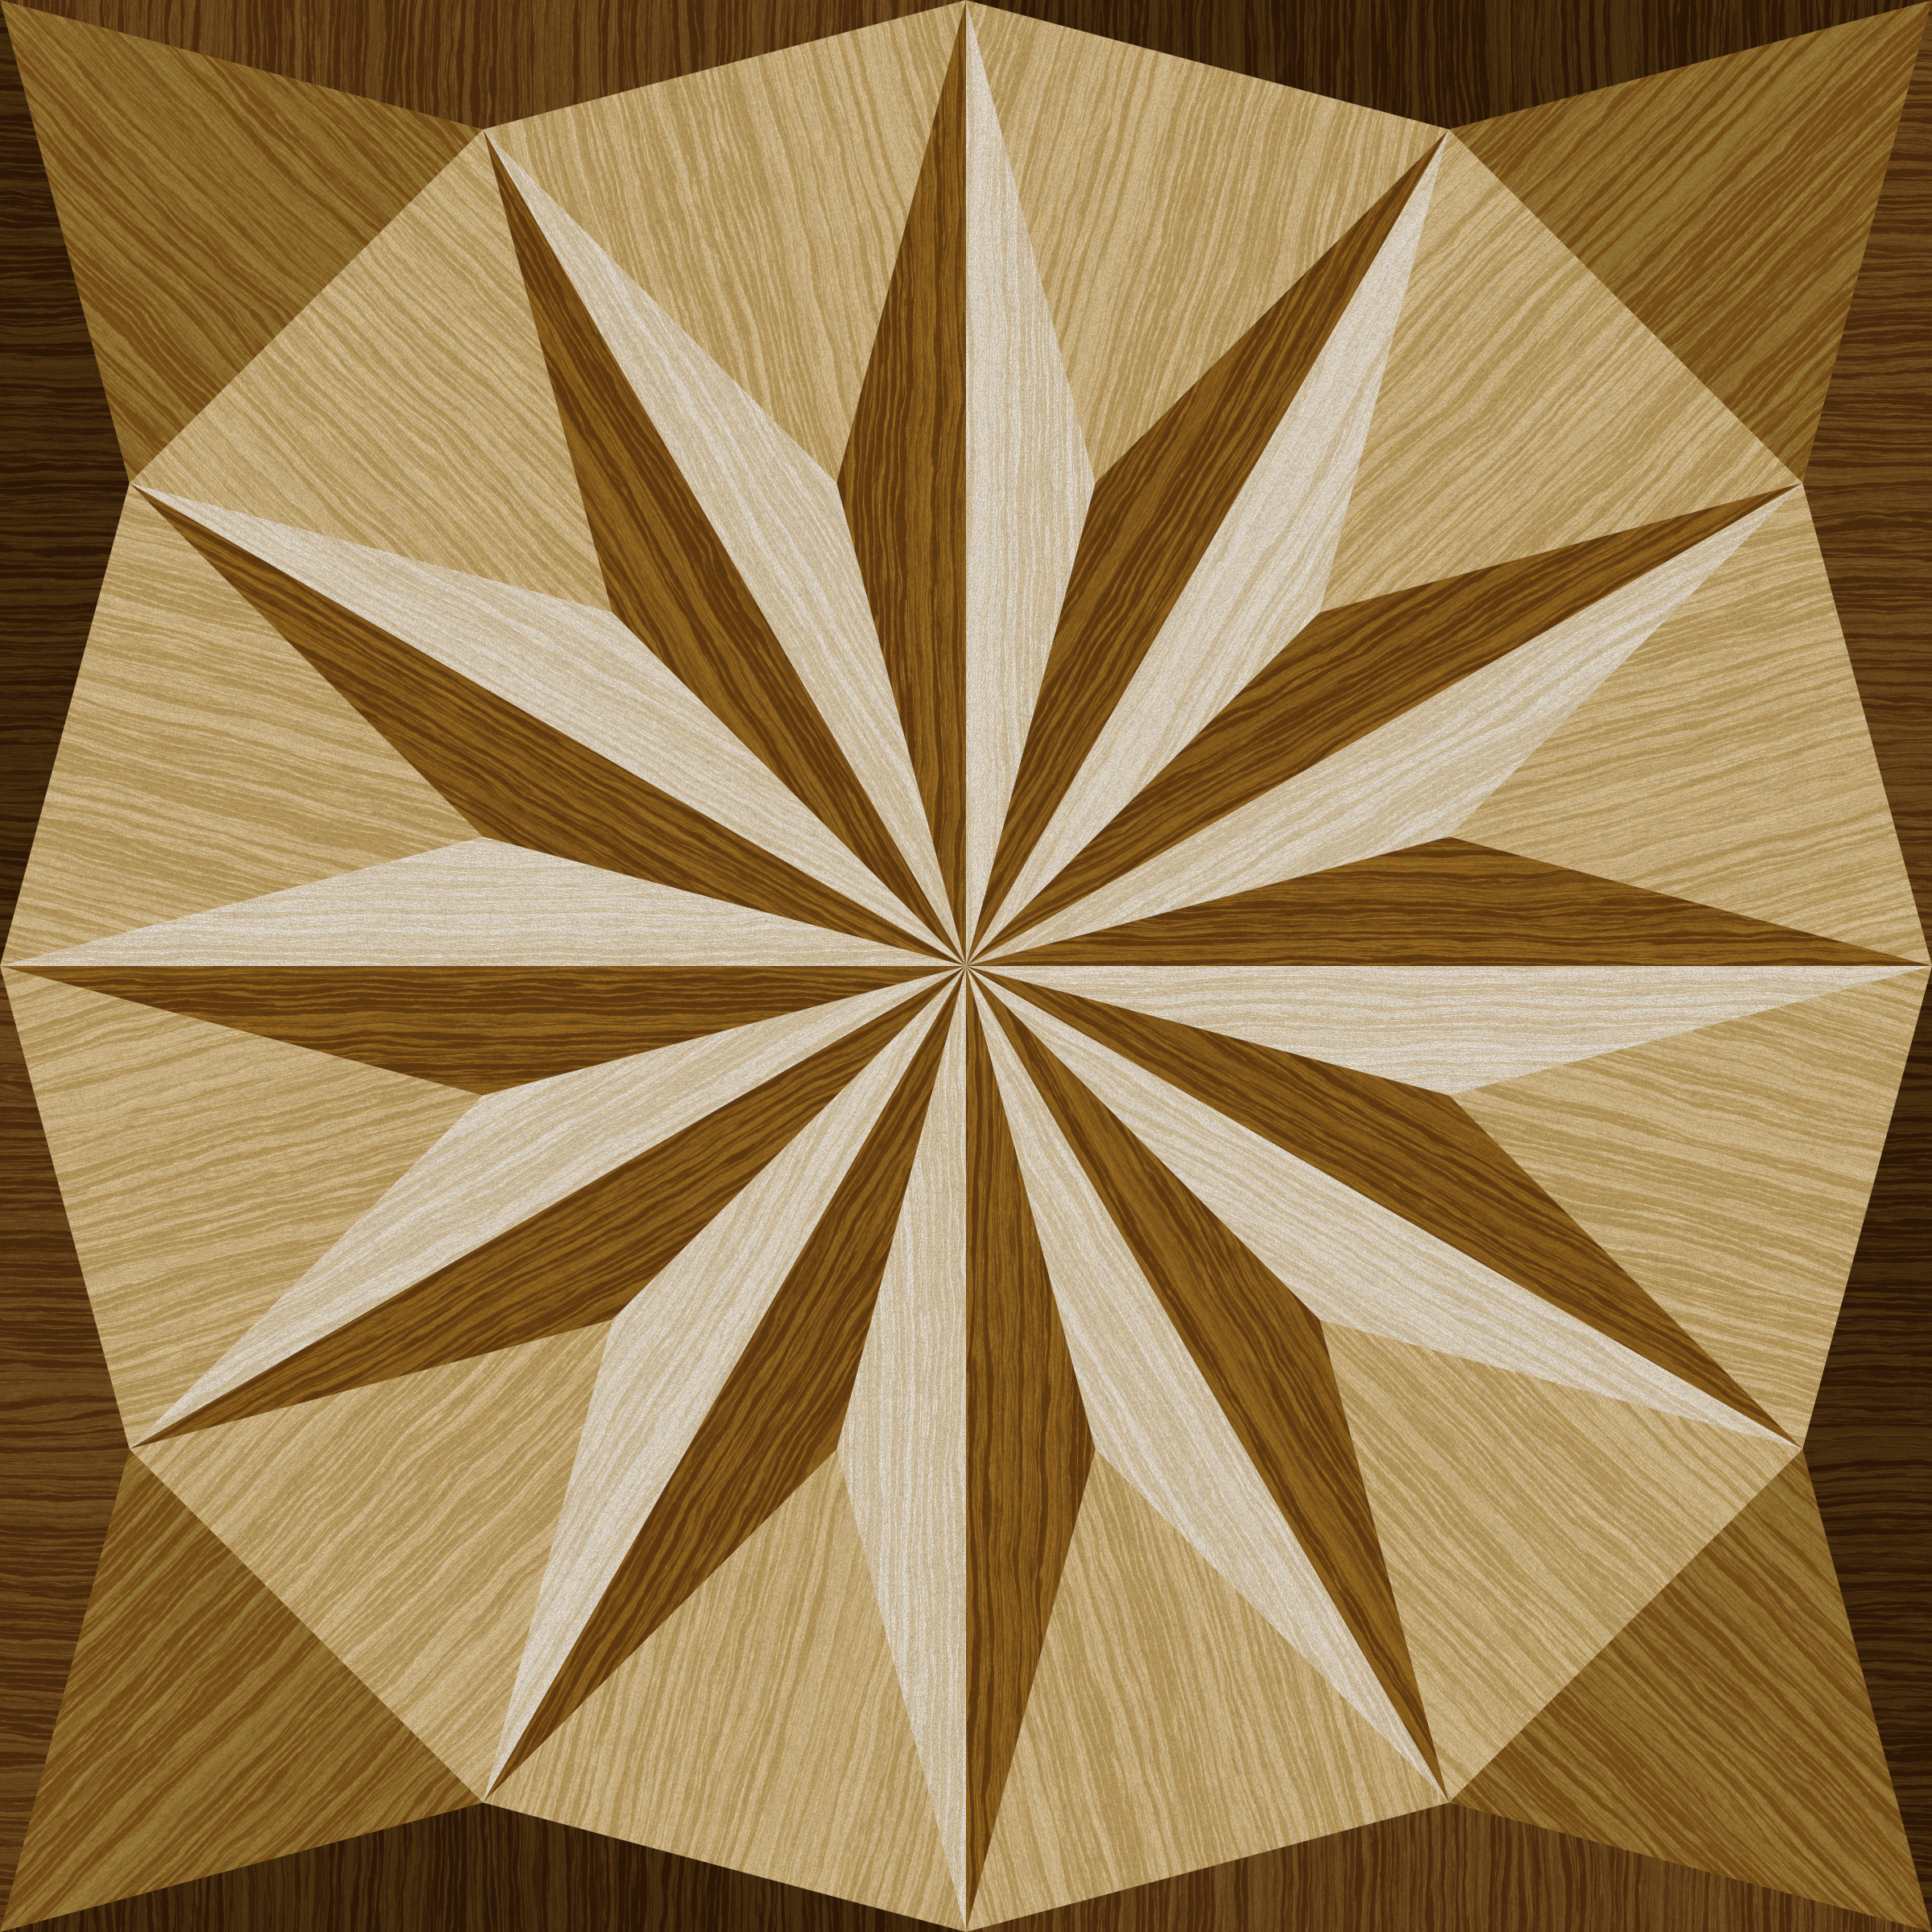 wooden triangle tiling 3 by Lazur URH